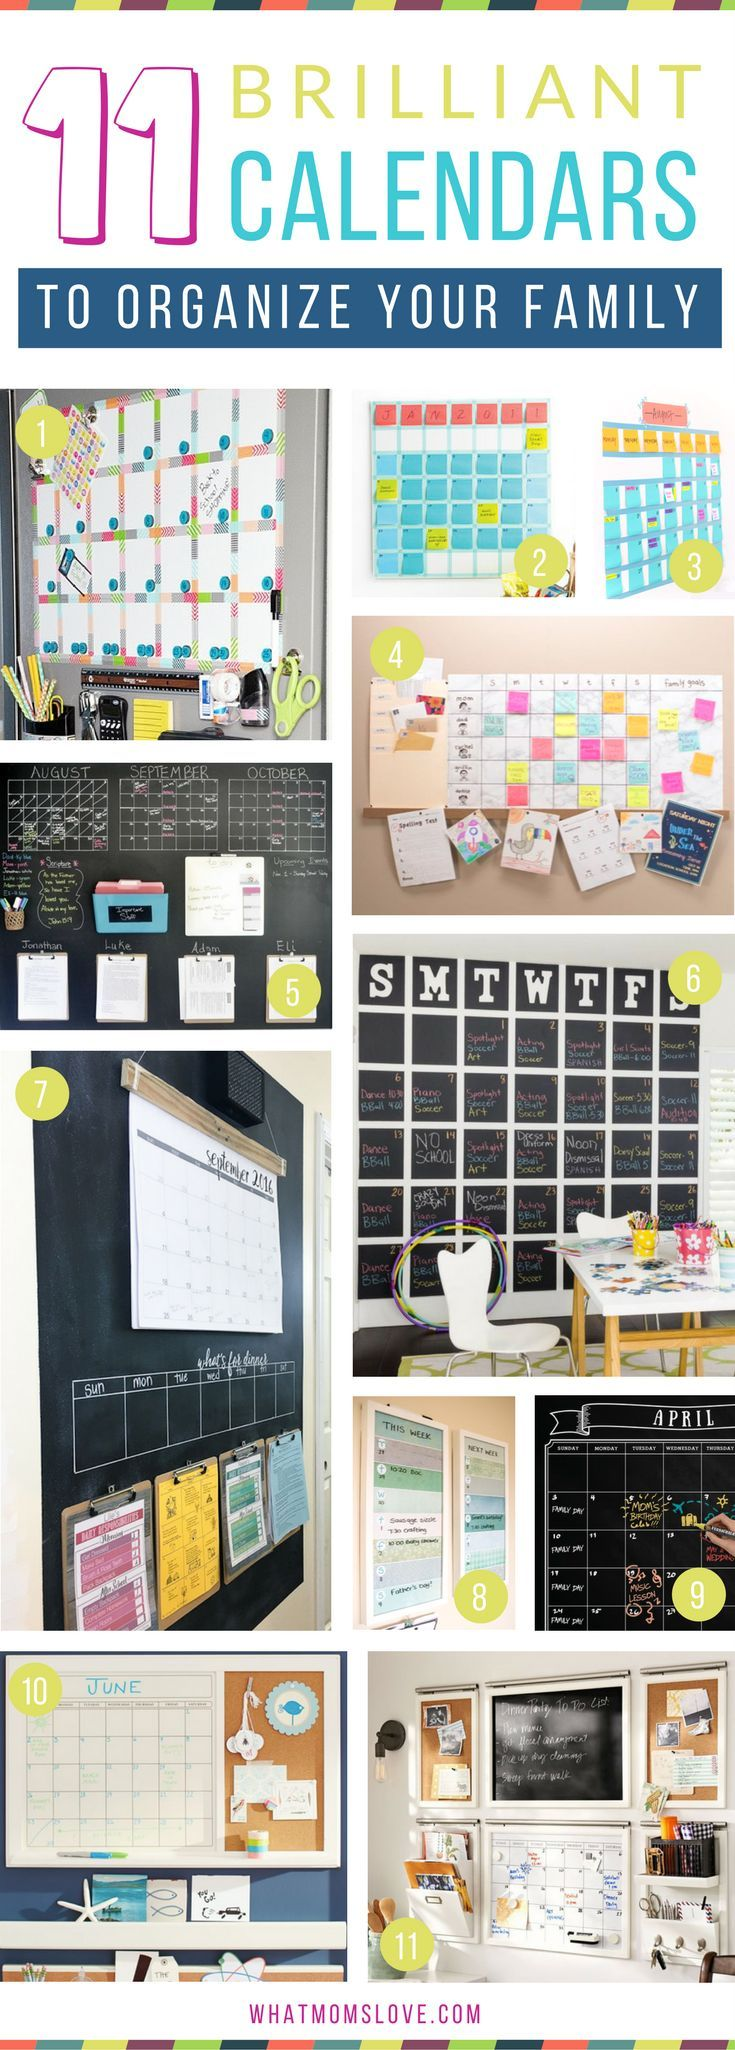 Calendar Organization Tips : Simple steps to get ridiculously organized for a stress